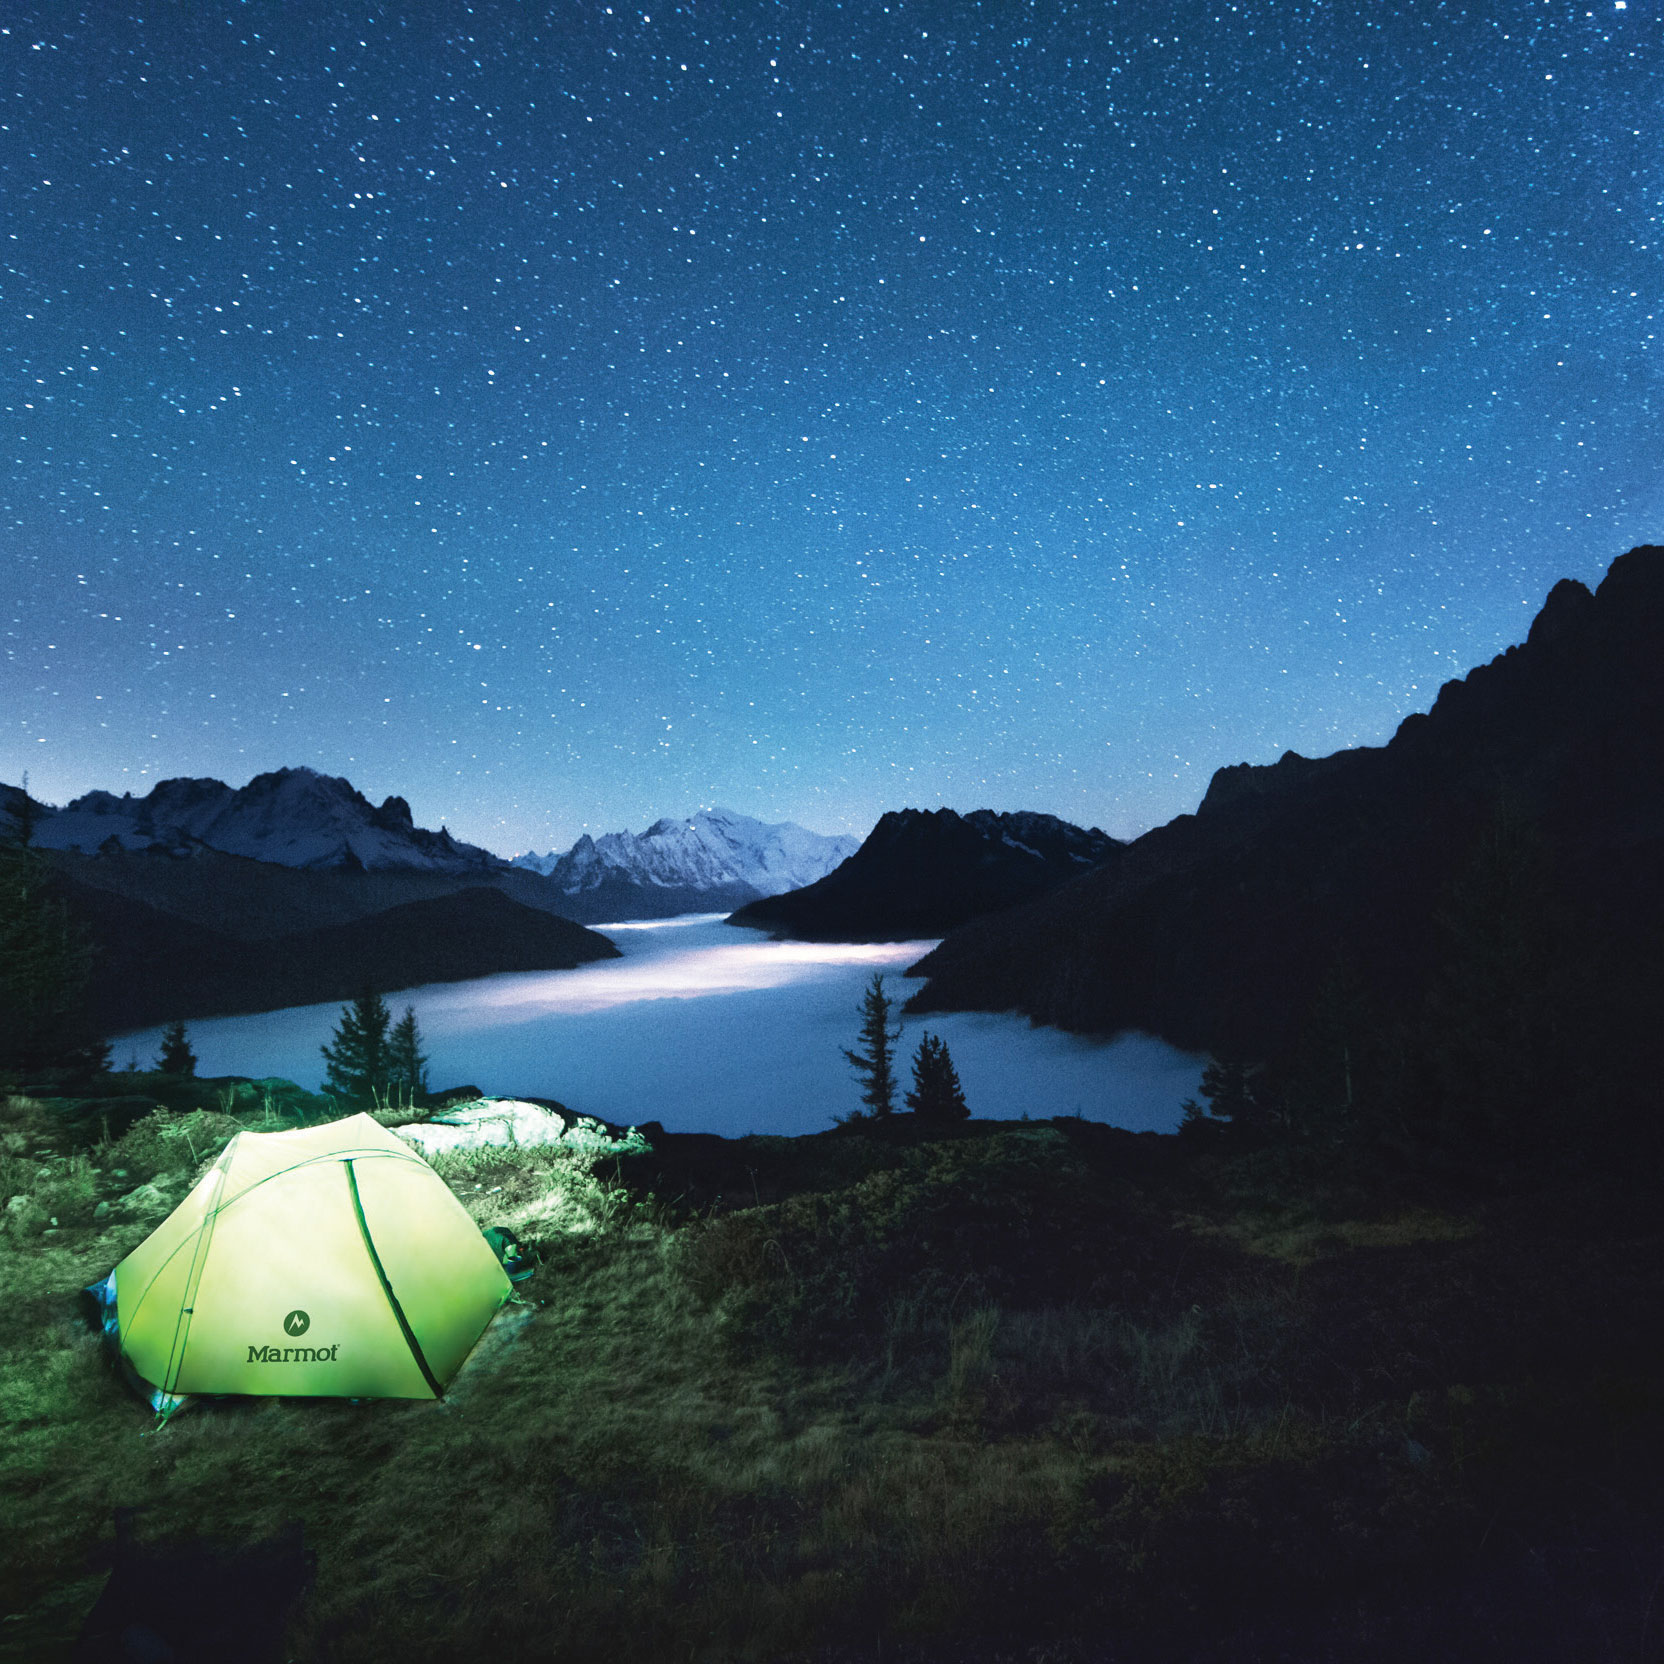 Image for article MARMOT MAGIC at George Fisher UK